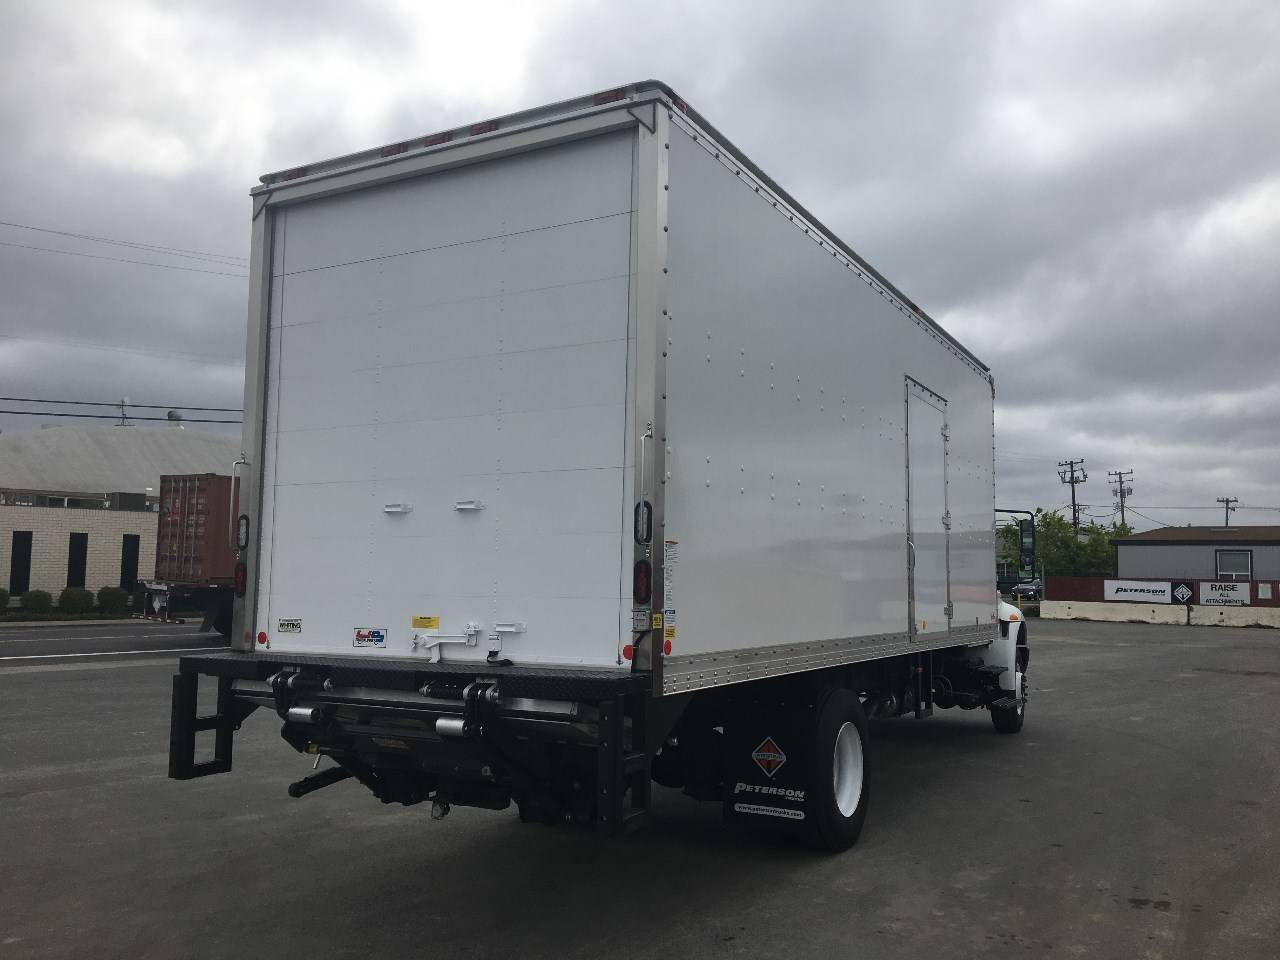 2018 International DuraStar 4300 4x2, U.S. Truck Body Dry Freight #JH002358 - photo 1